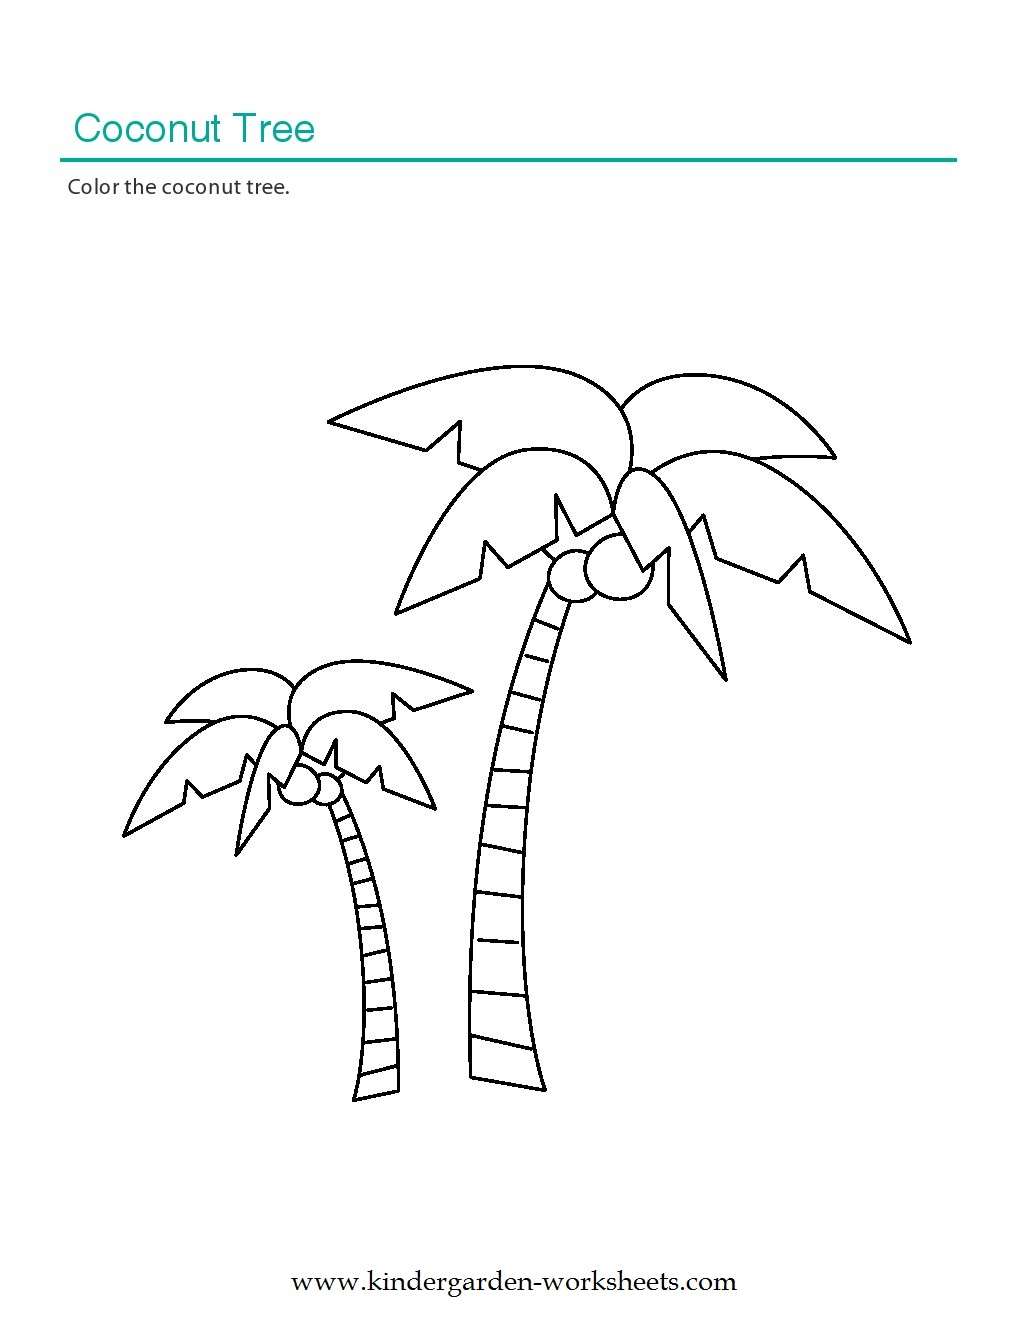 Kindergarten Worksheets: Printable Coloring Worksheets - Coconut Tree